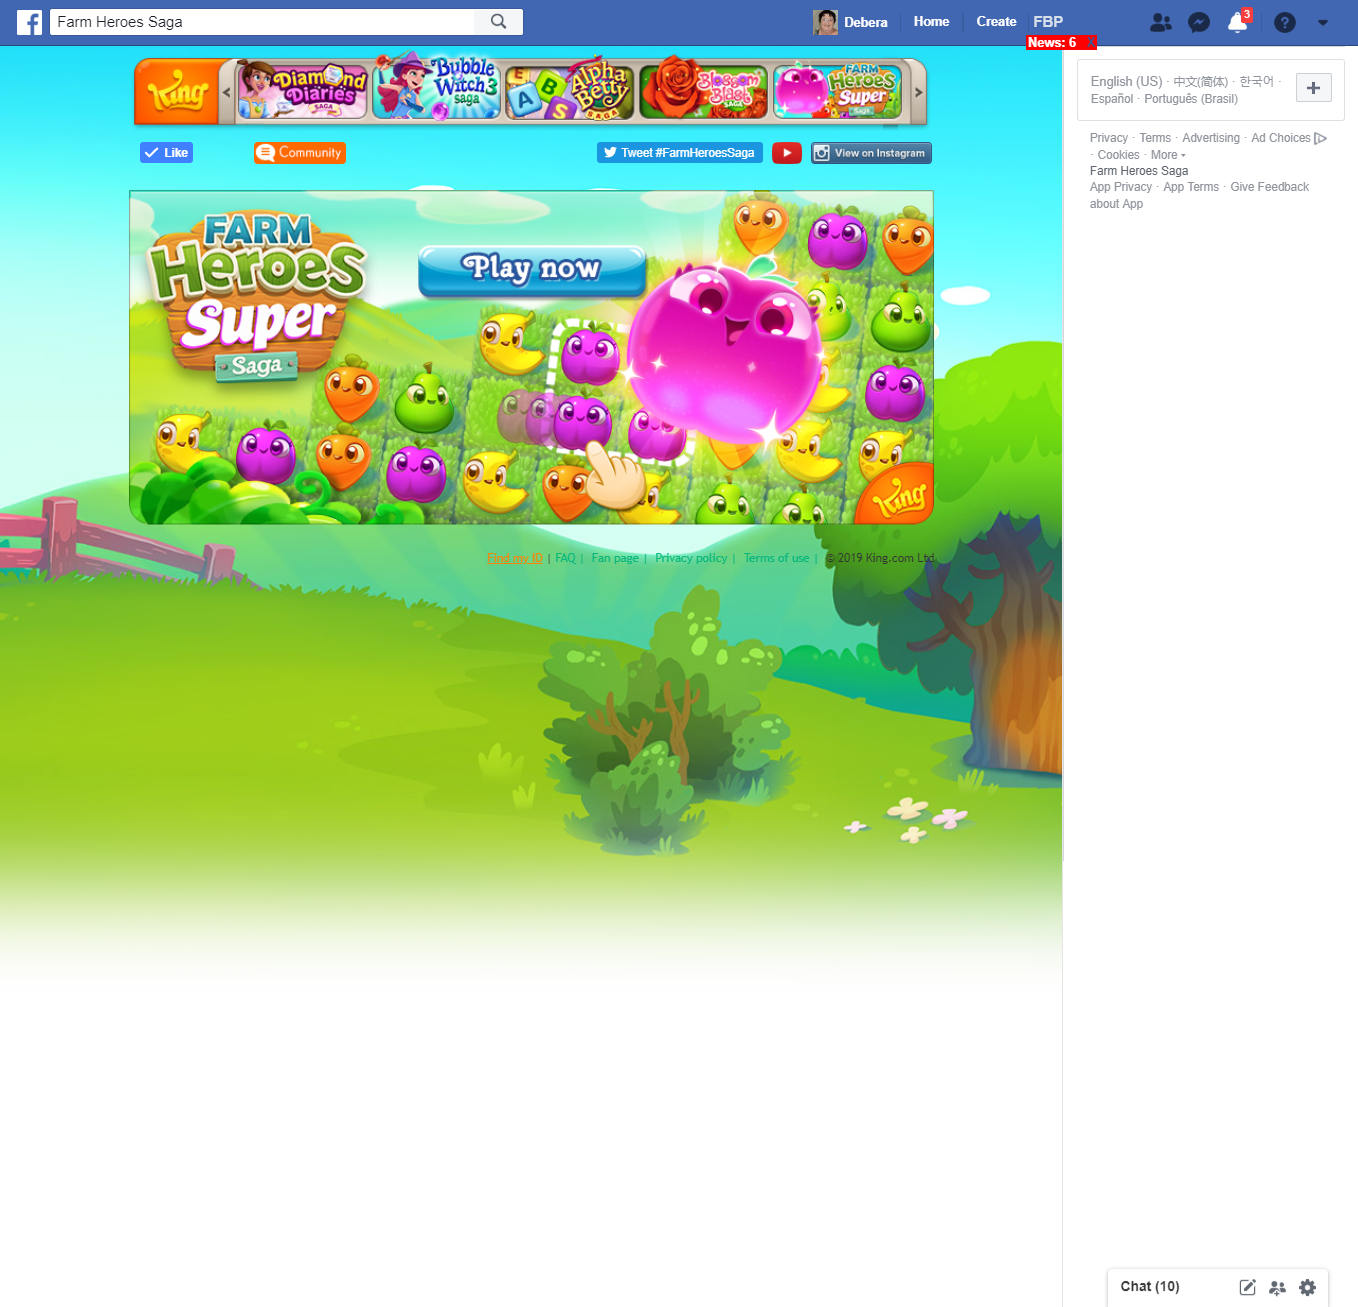 My Farm Heroes is not showing/loading on Facebook! (This has